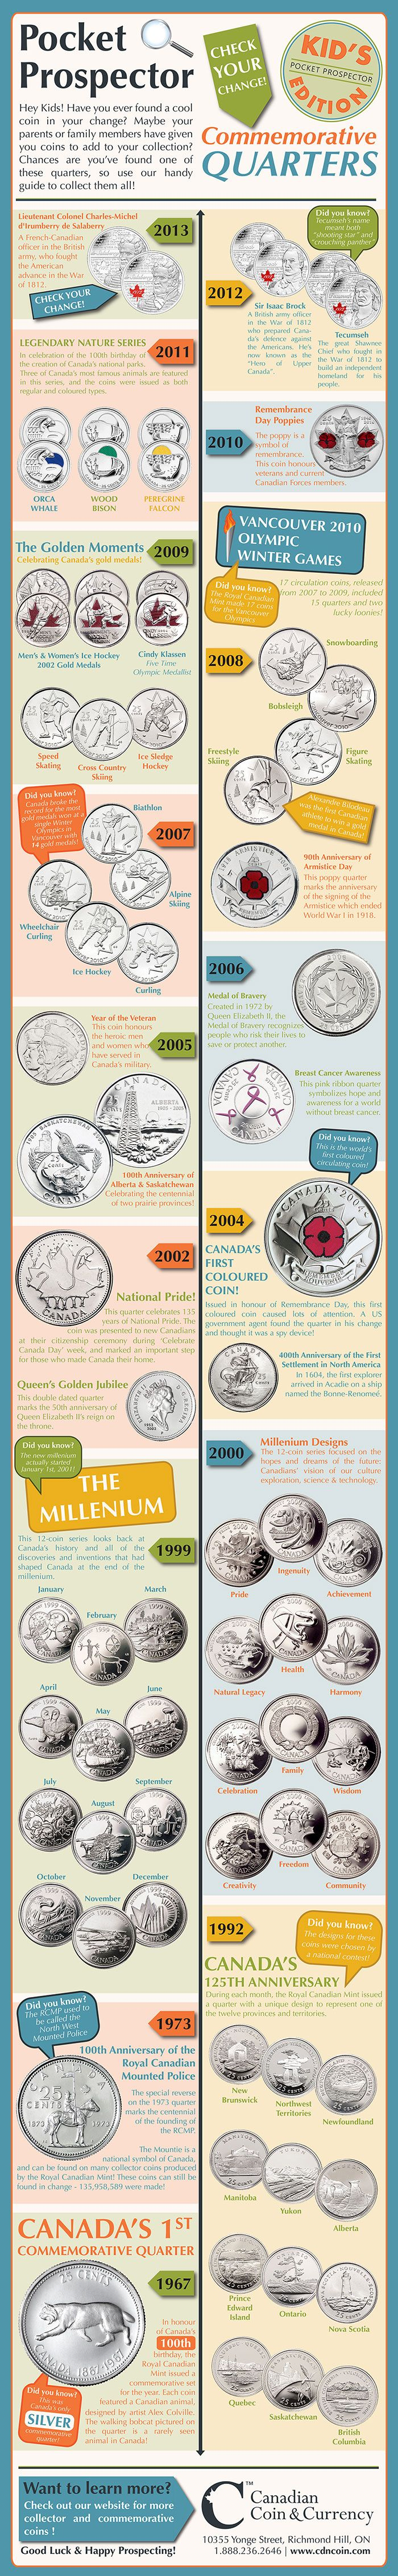 best images about about prime commemorative quarters infographic